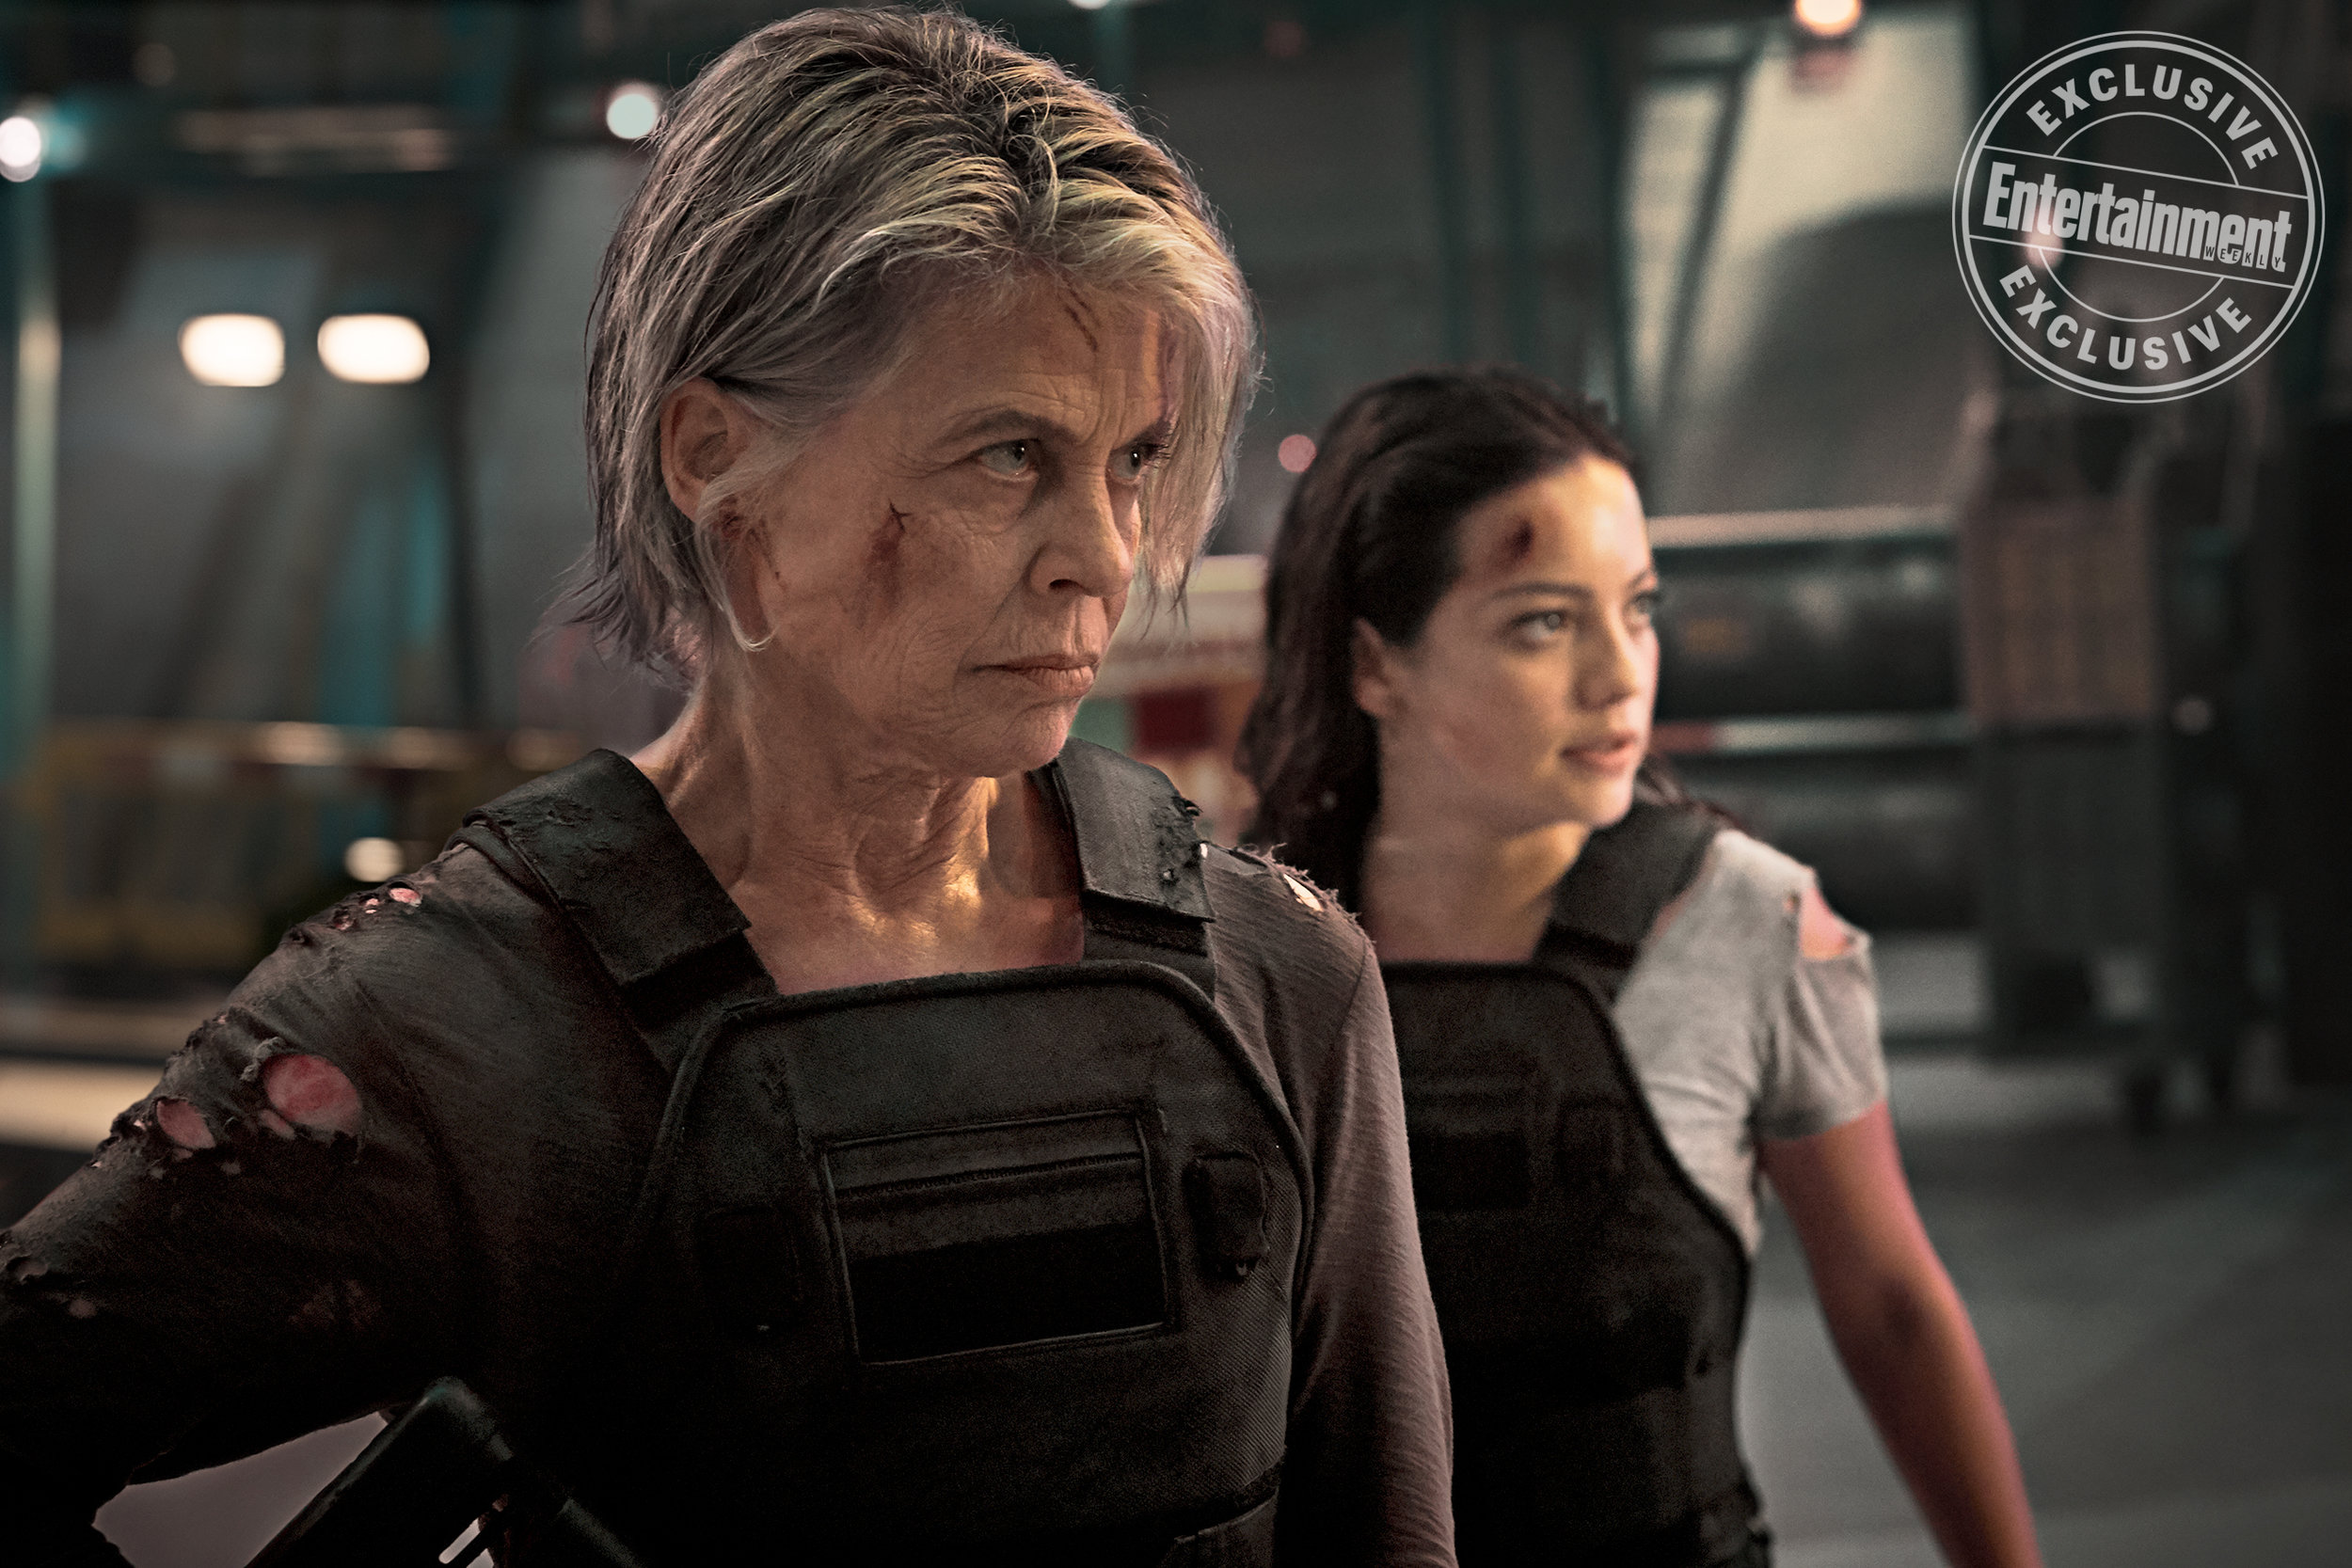 new-photos-of-sarah-connor-in-terminator-dark-fate-and-linda-hamilton-explains-why-she-came-back-for-the-role2